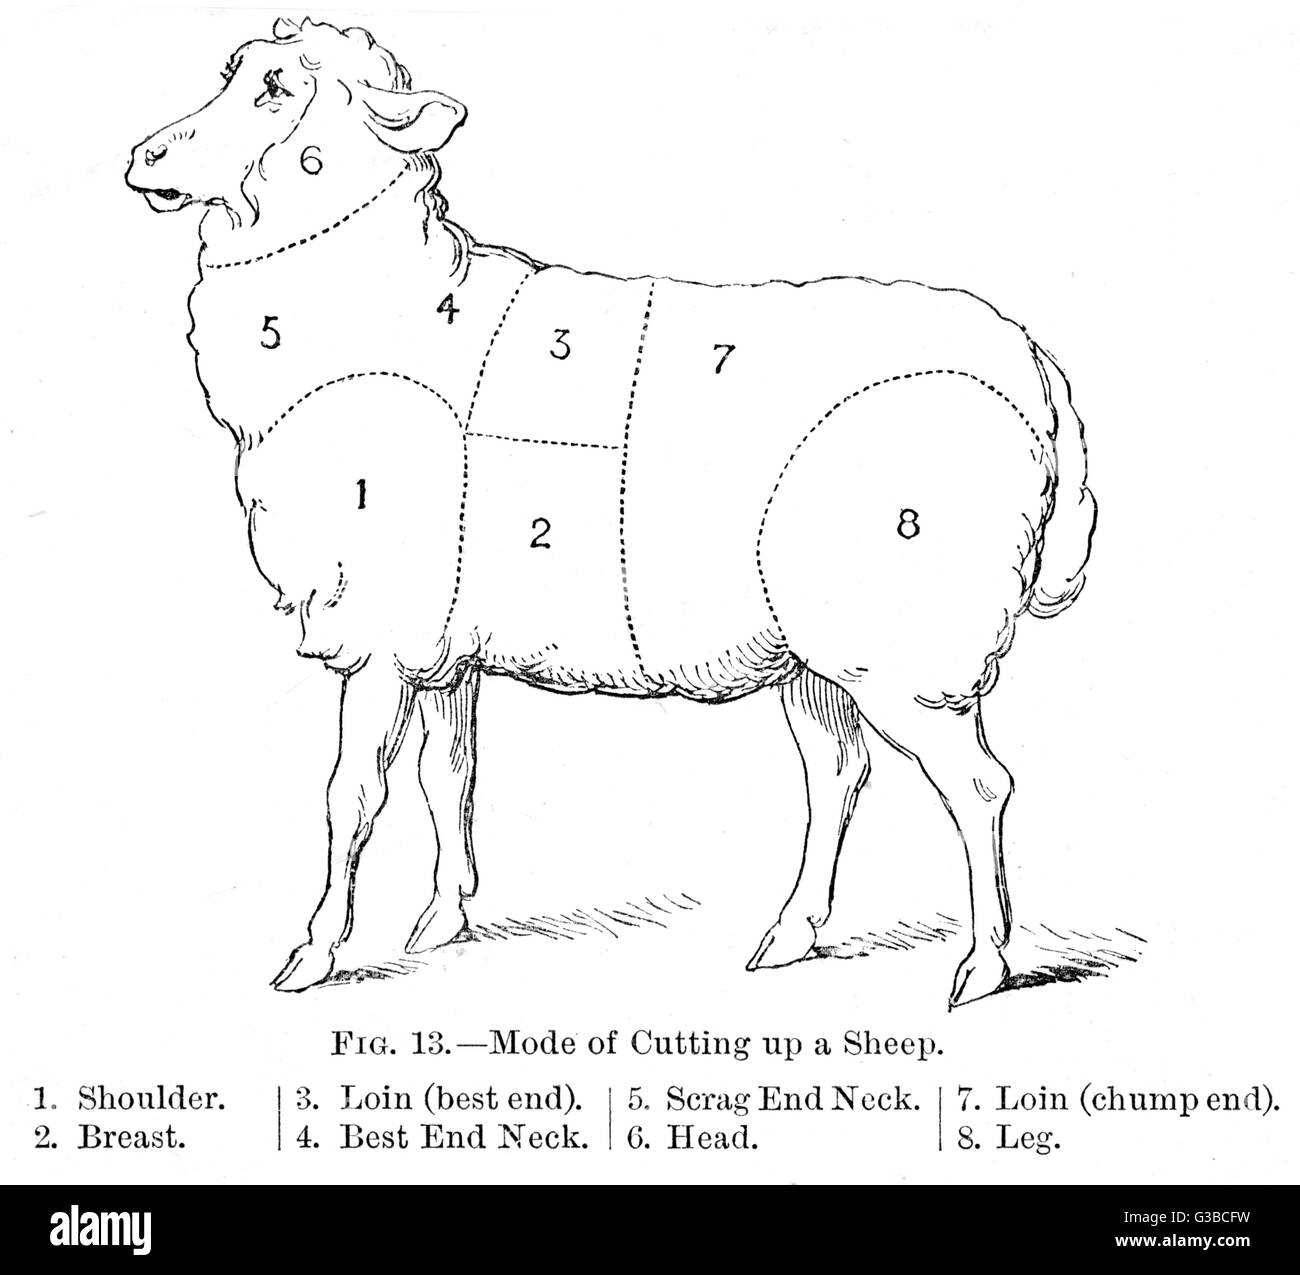 hight resolution of diagram of a sheep showing the various cuts date nineteenth century